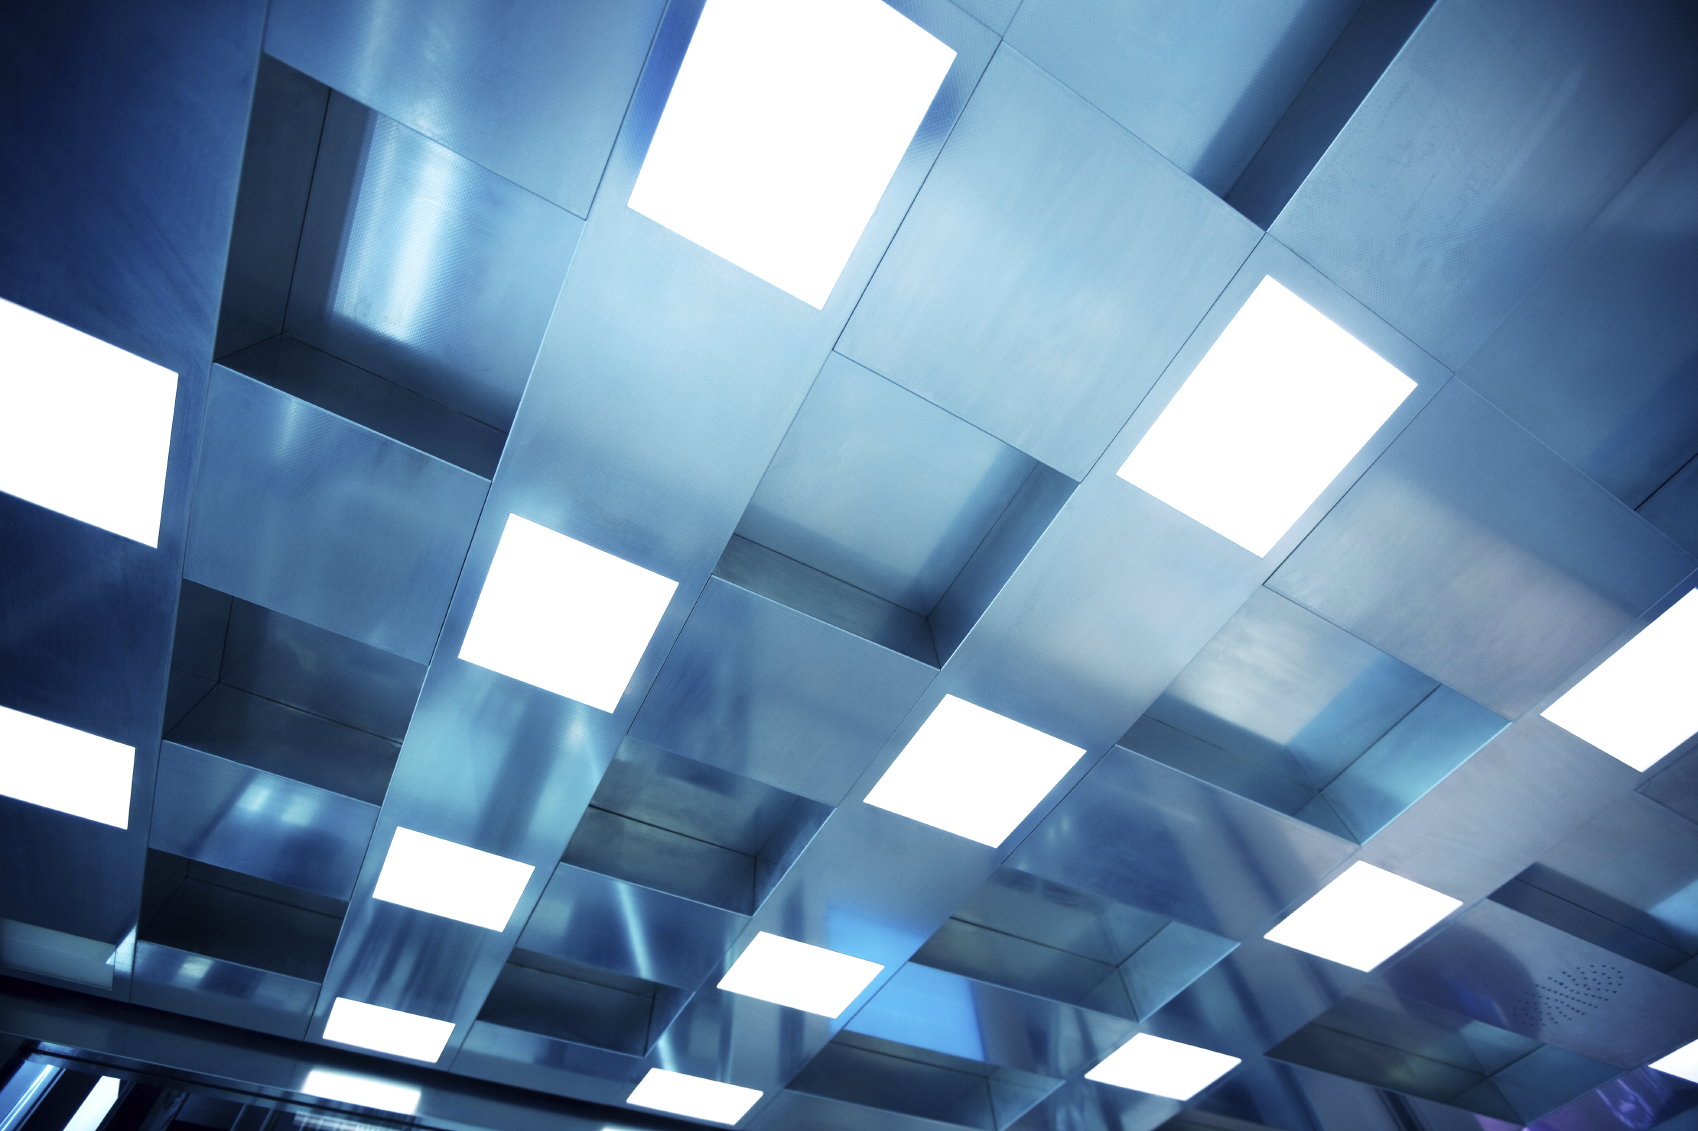 Full frame of a ceiling with fluorescent light at Dubai airport